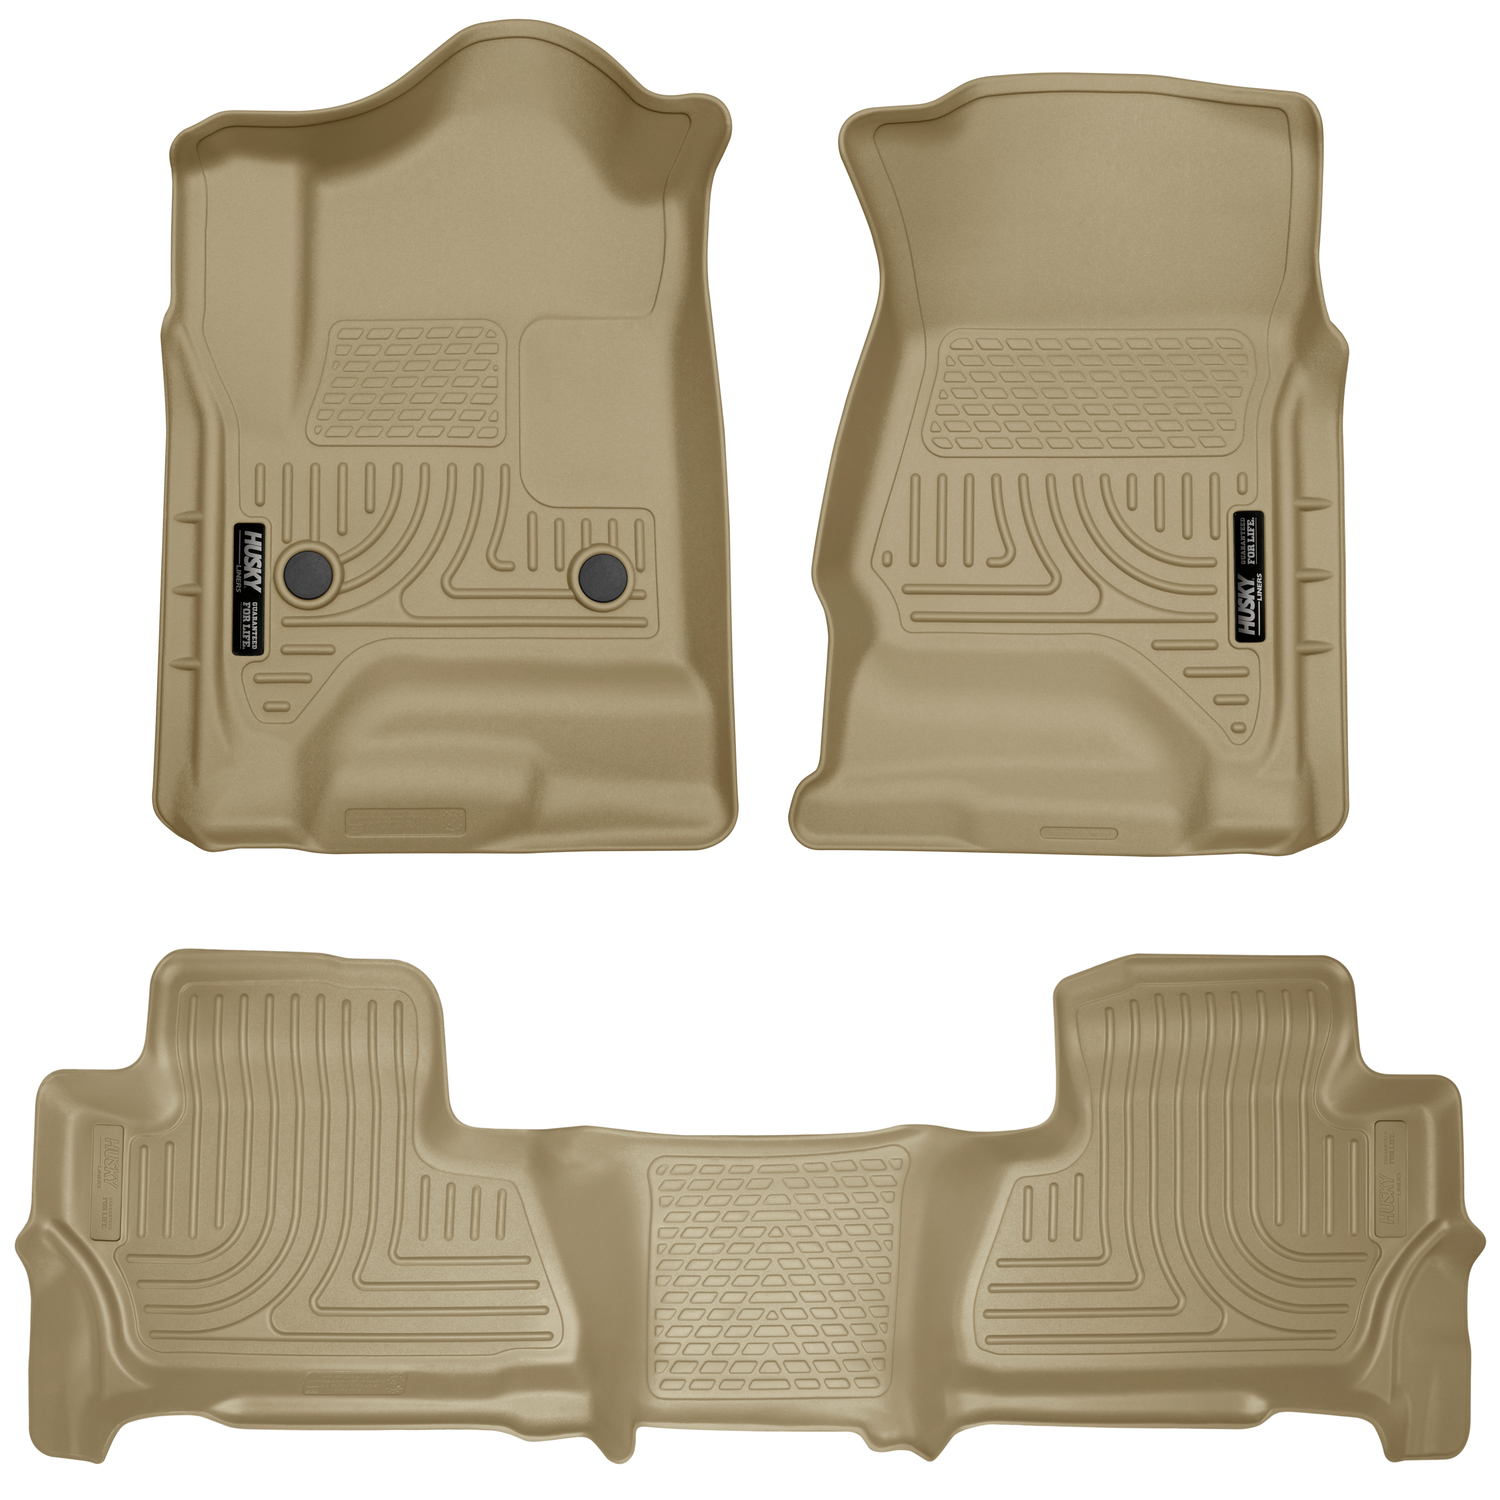 Husky Liners Front & 2nd Seat Floor Liners Fits 15-18 Tahoe/Yukon - TAN